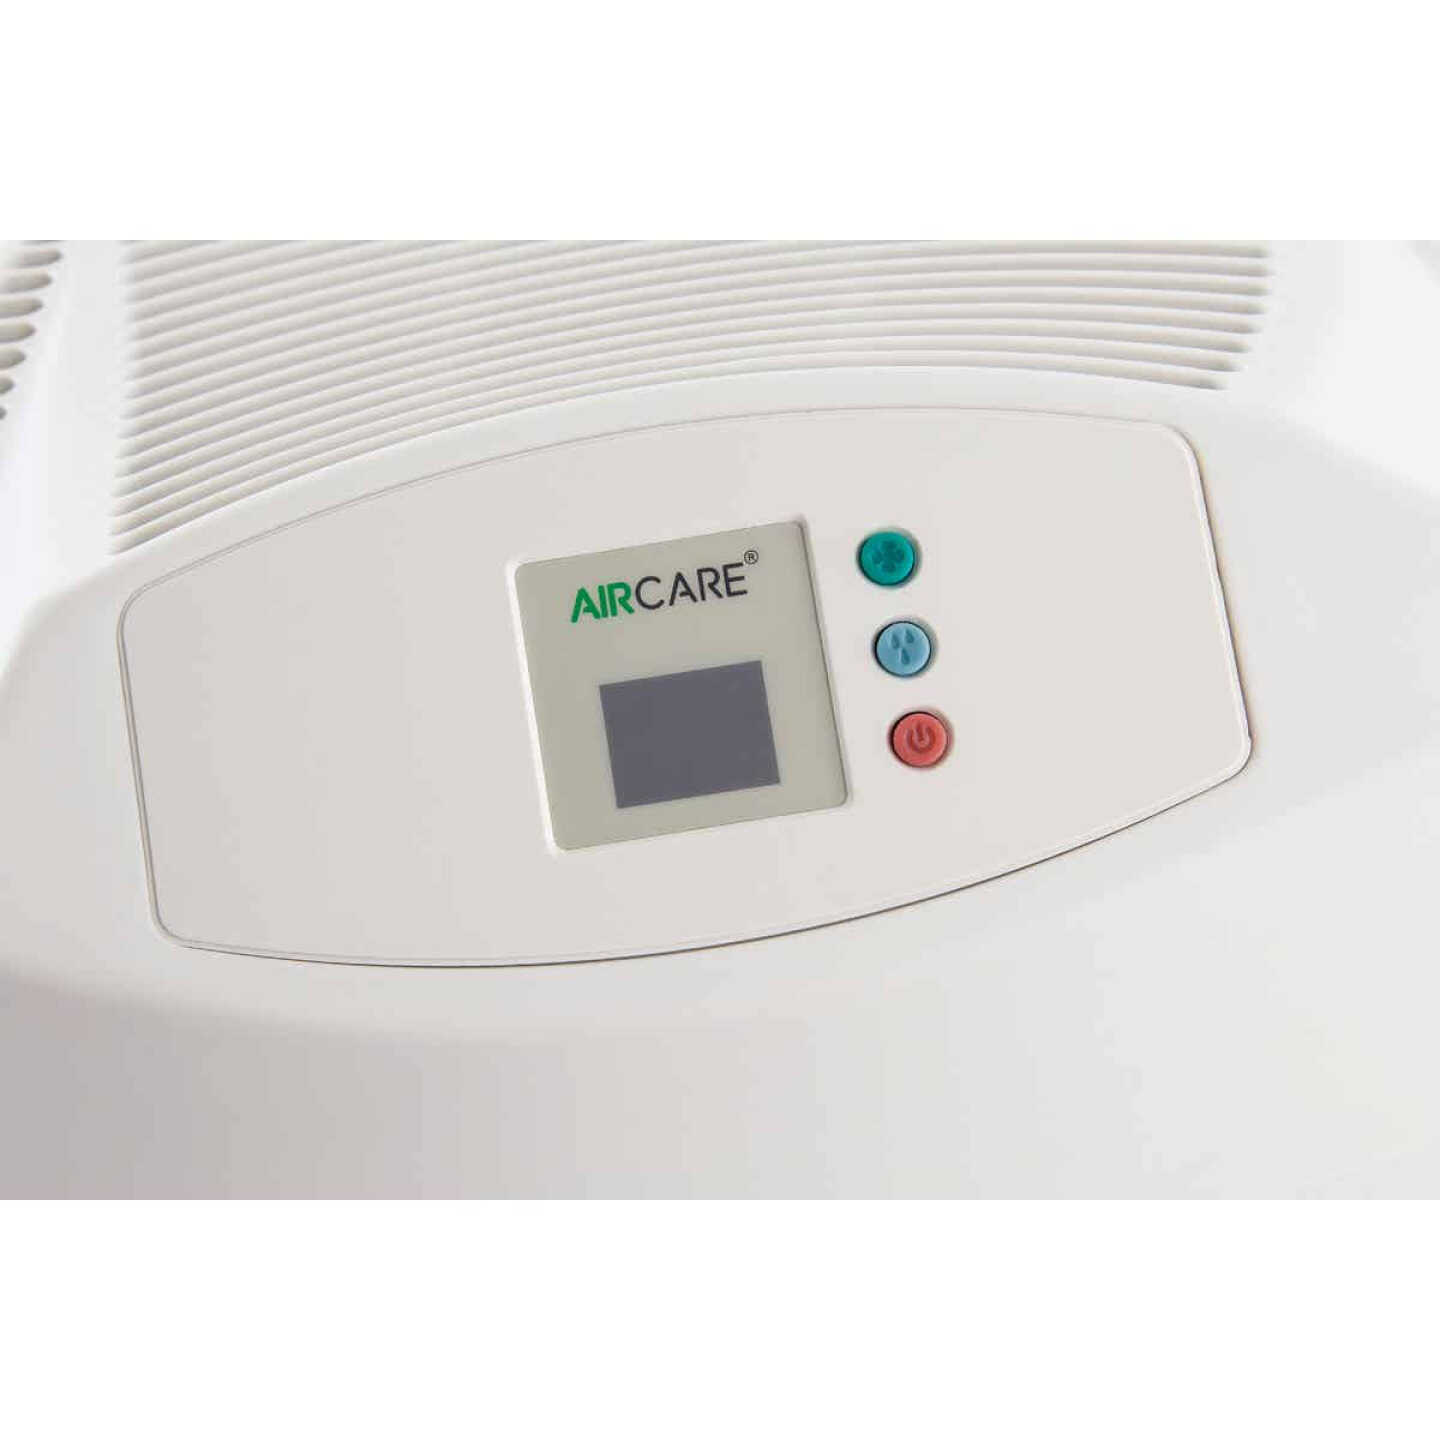 AirCare 3.6 Gal. Capacity 3600 Sq. Ft. Console Evaporative Humidifier Image 4